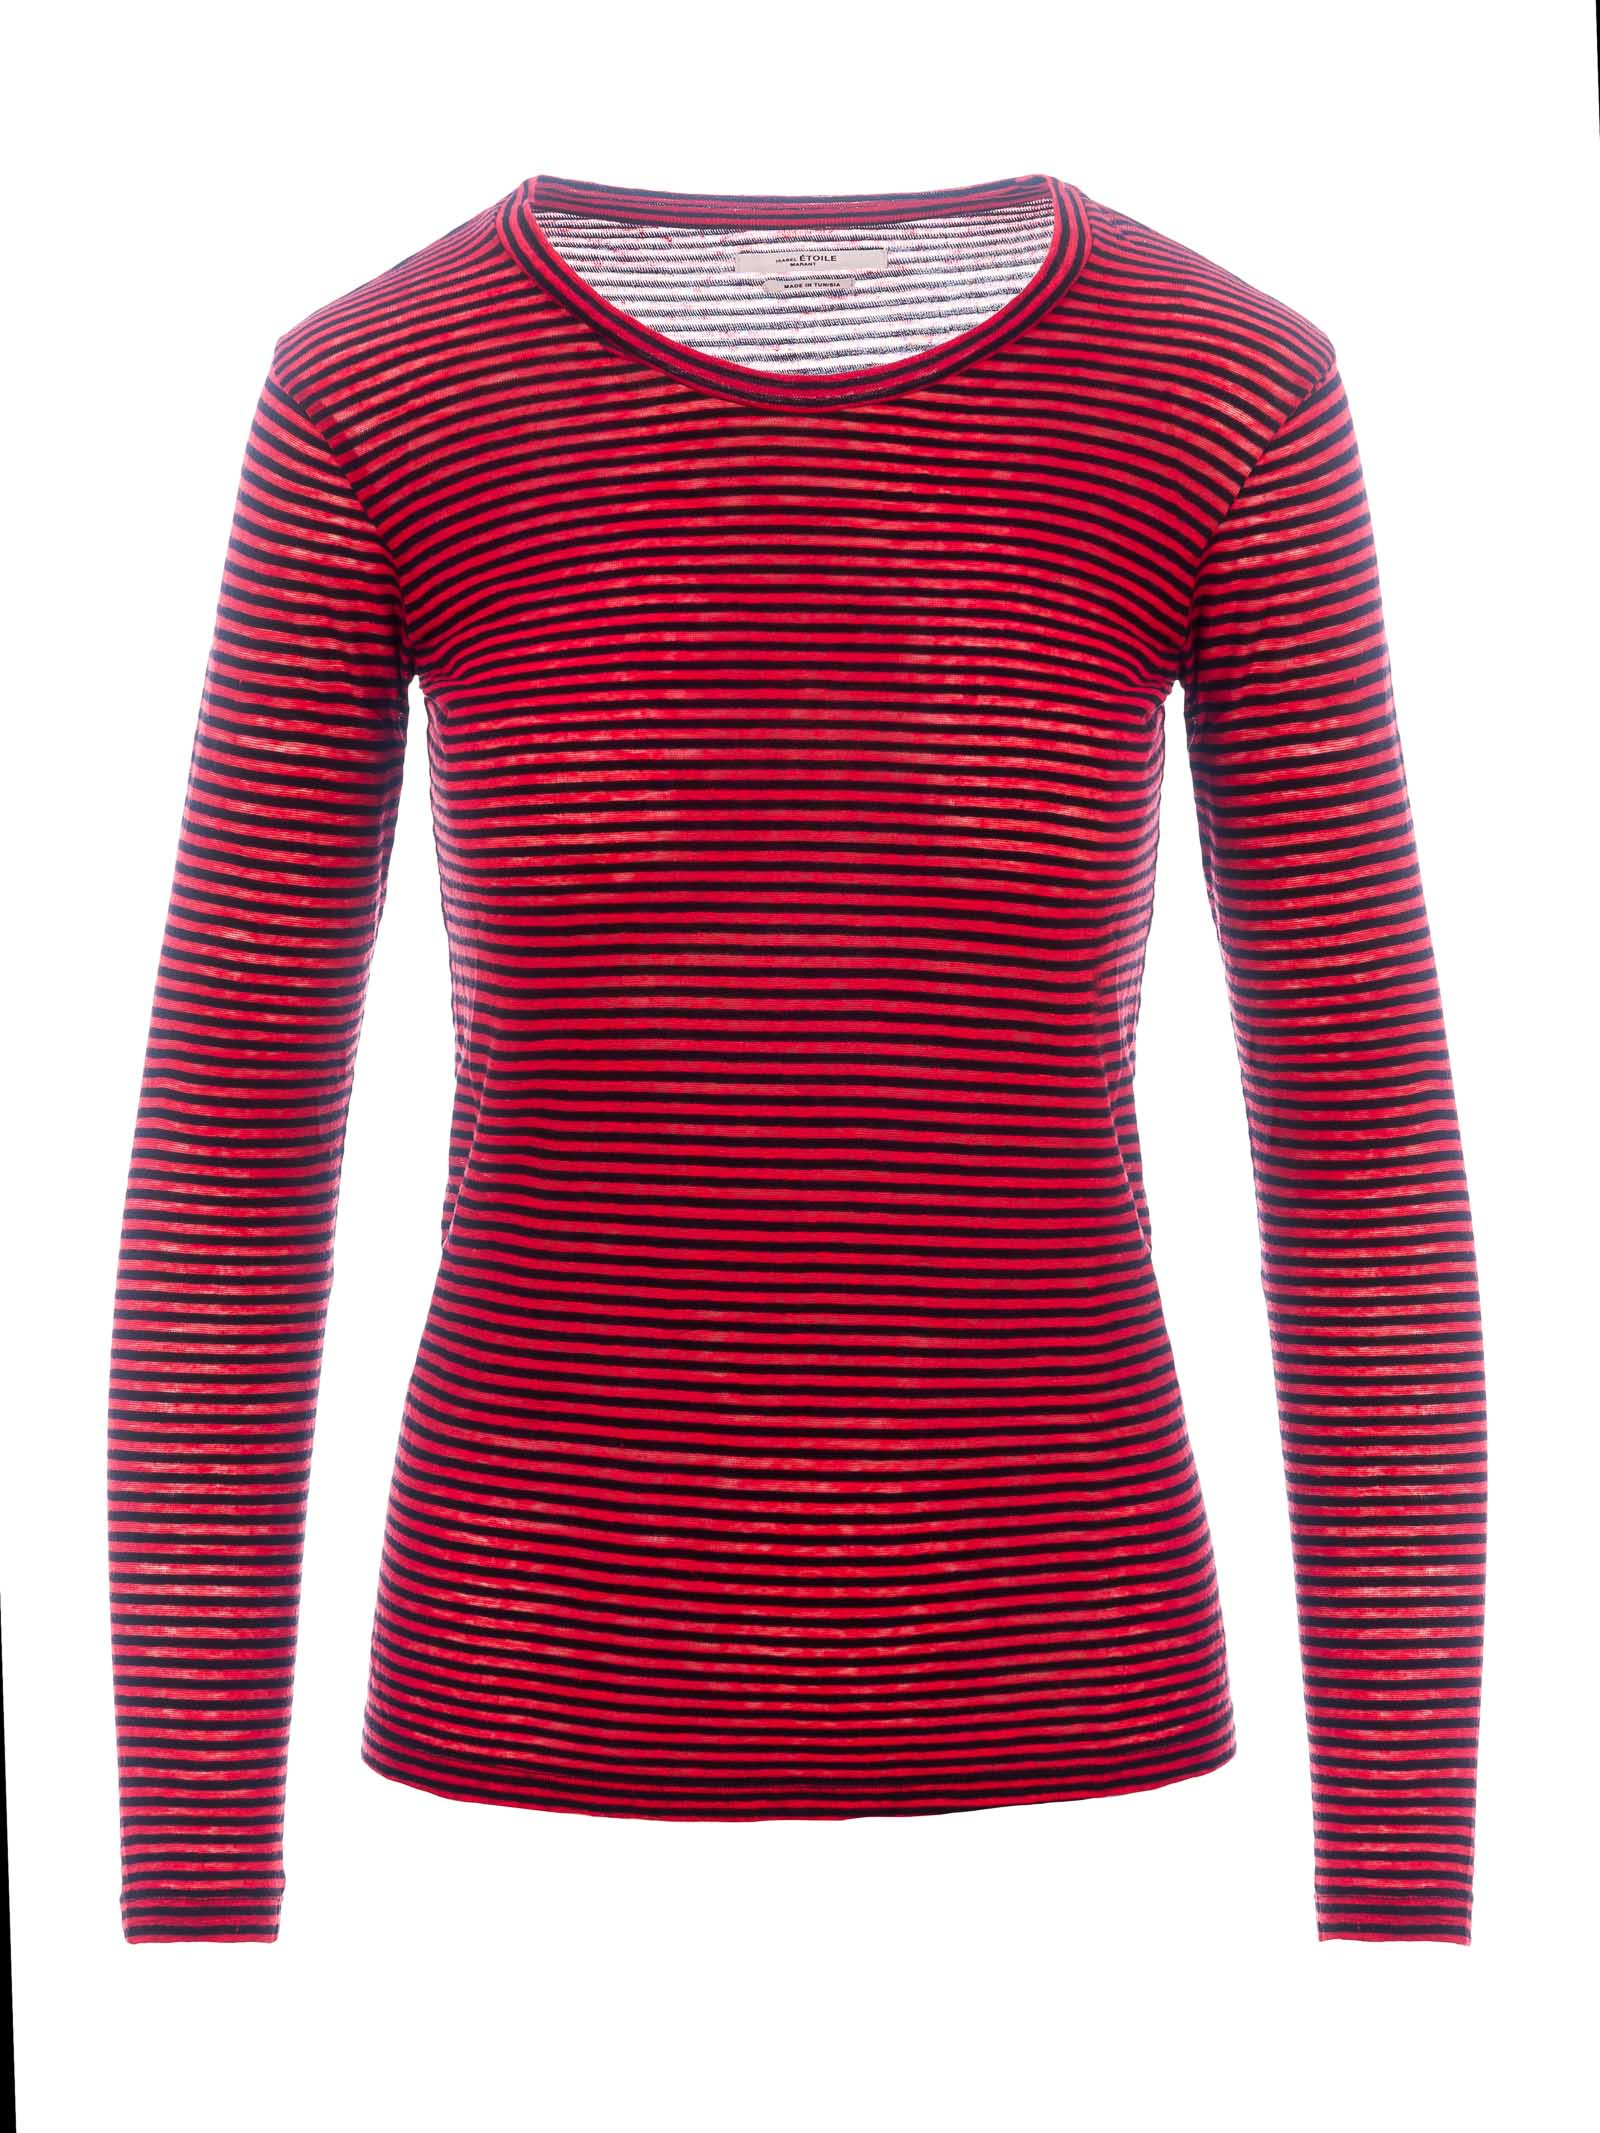 Details about Isabel Marant Women's Clothing T Shirts & Tops TS040400M006E | Red Black